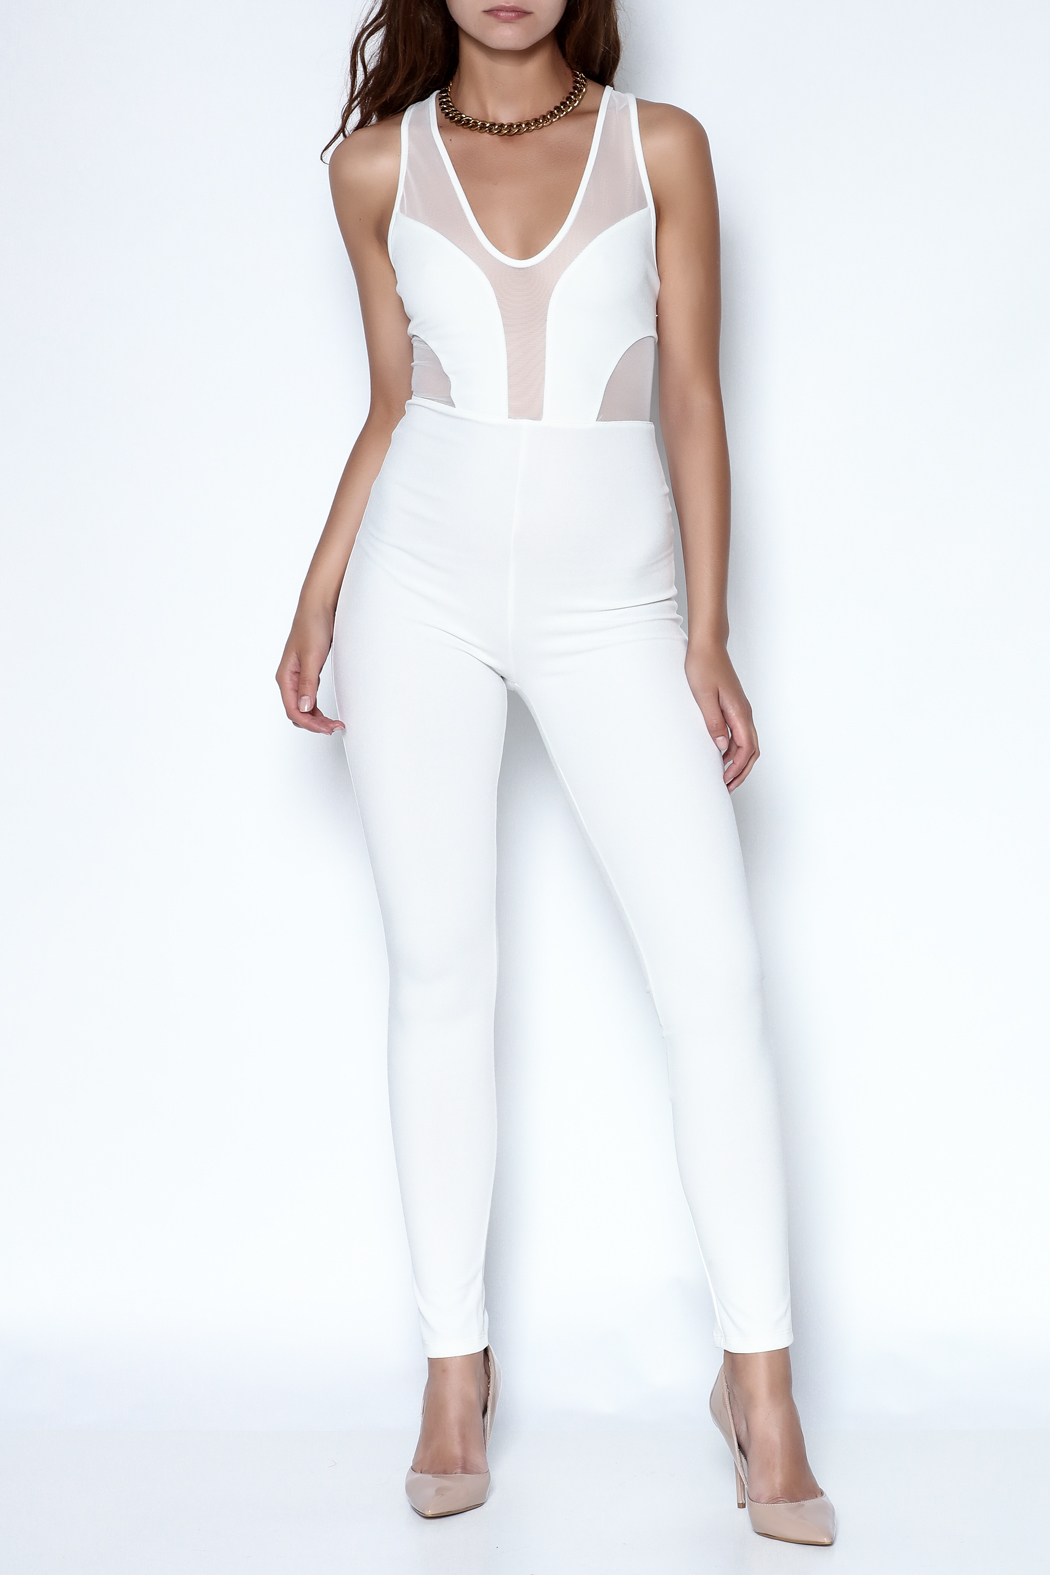 simple the label X Back Jumpsuit - Front Cropped Image